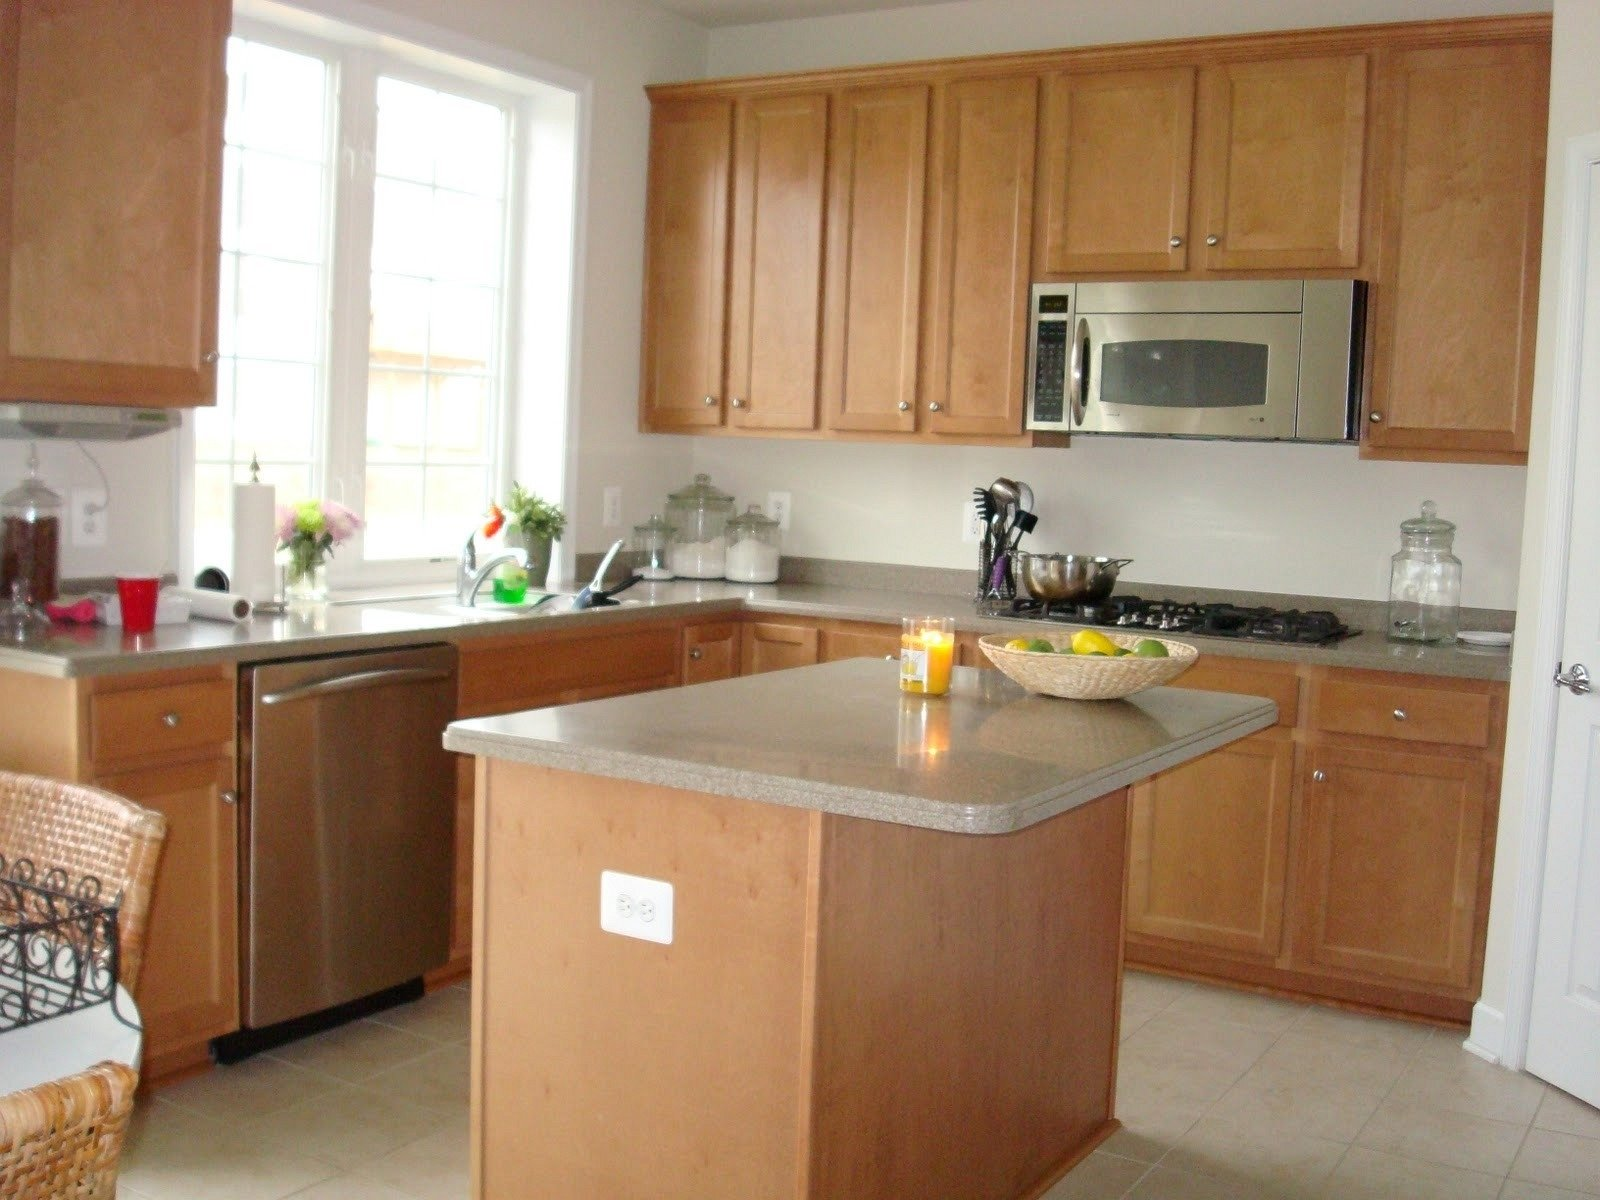 10 Lovable Kitchen Color Ideas With Maple Cabinets kitchen kitchen color ideas with maple cabinets food kitchen 2020